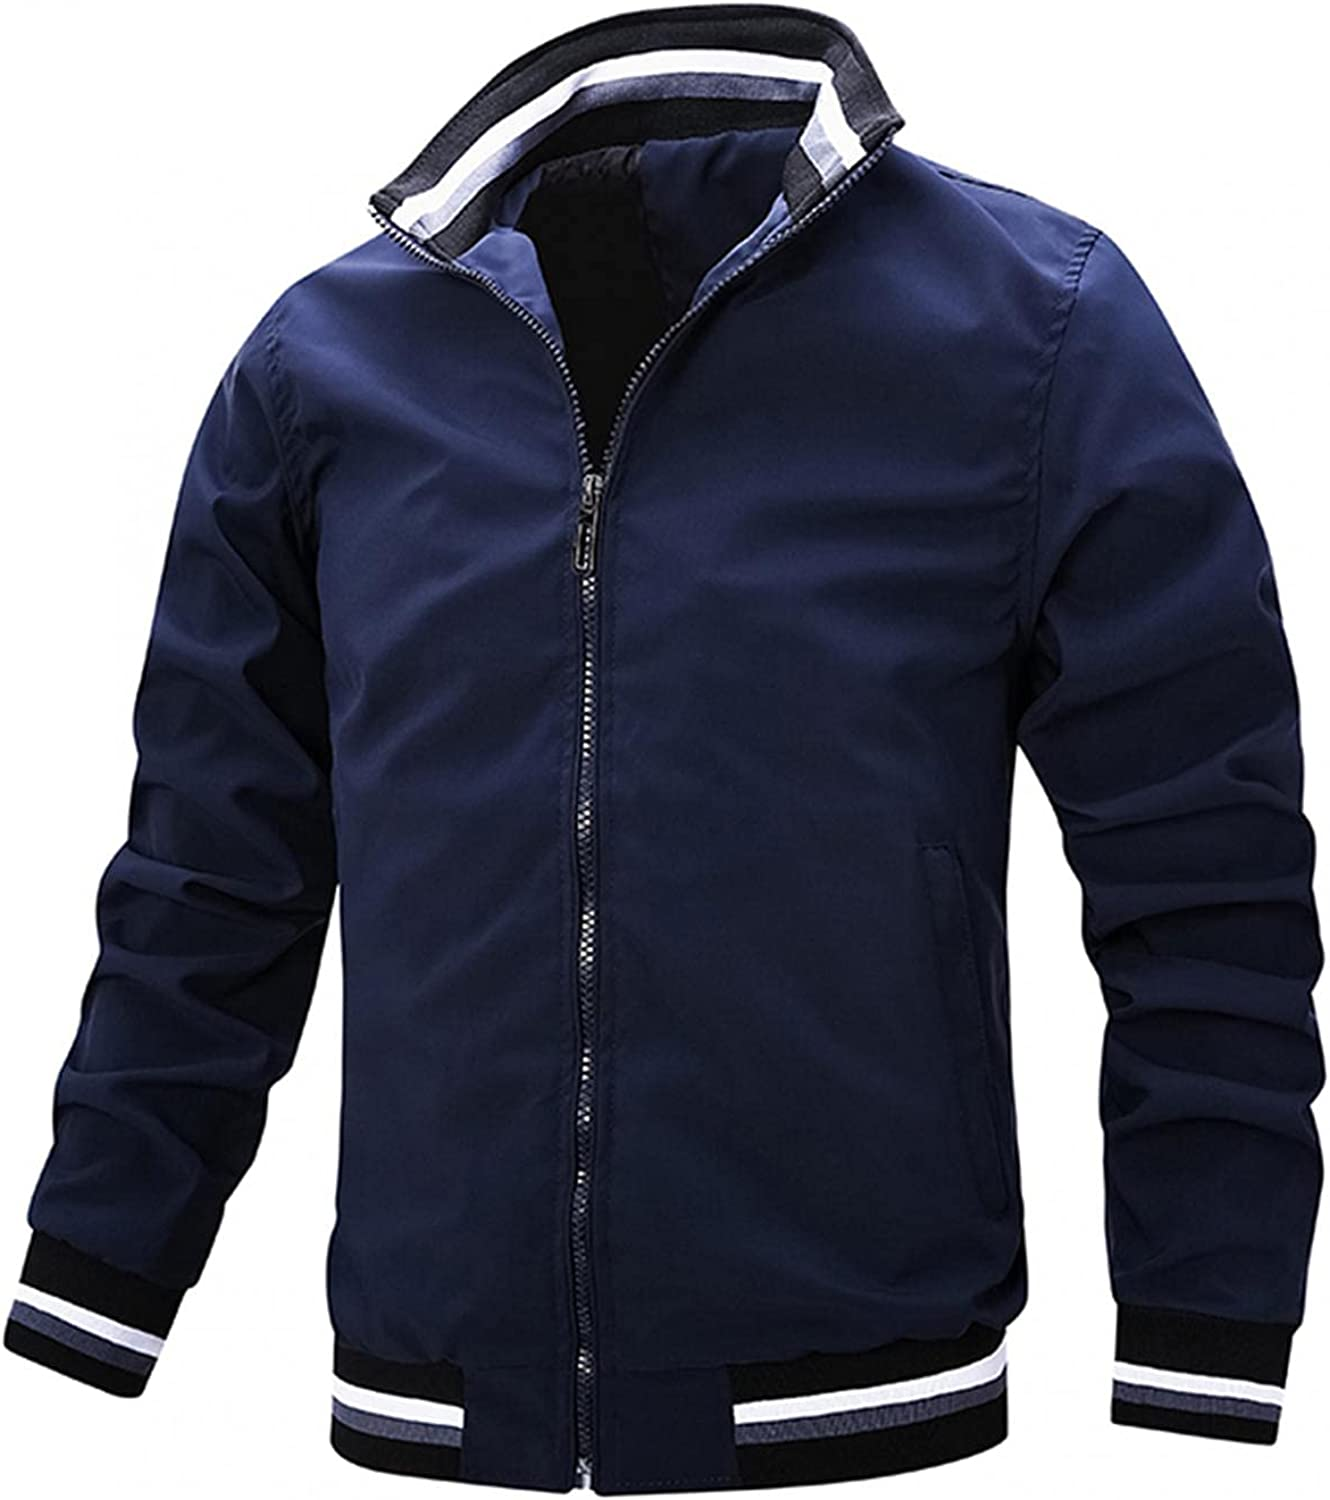 Sales of SALE items from new works AKIMPE Men's OFFicial AutumnWinter Casual Zipper Tops Jackets waterproof